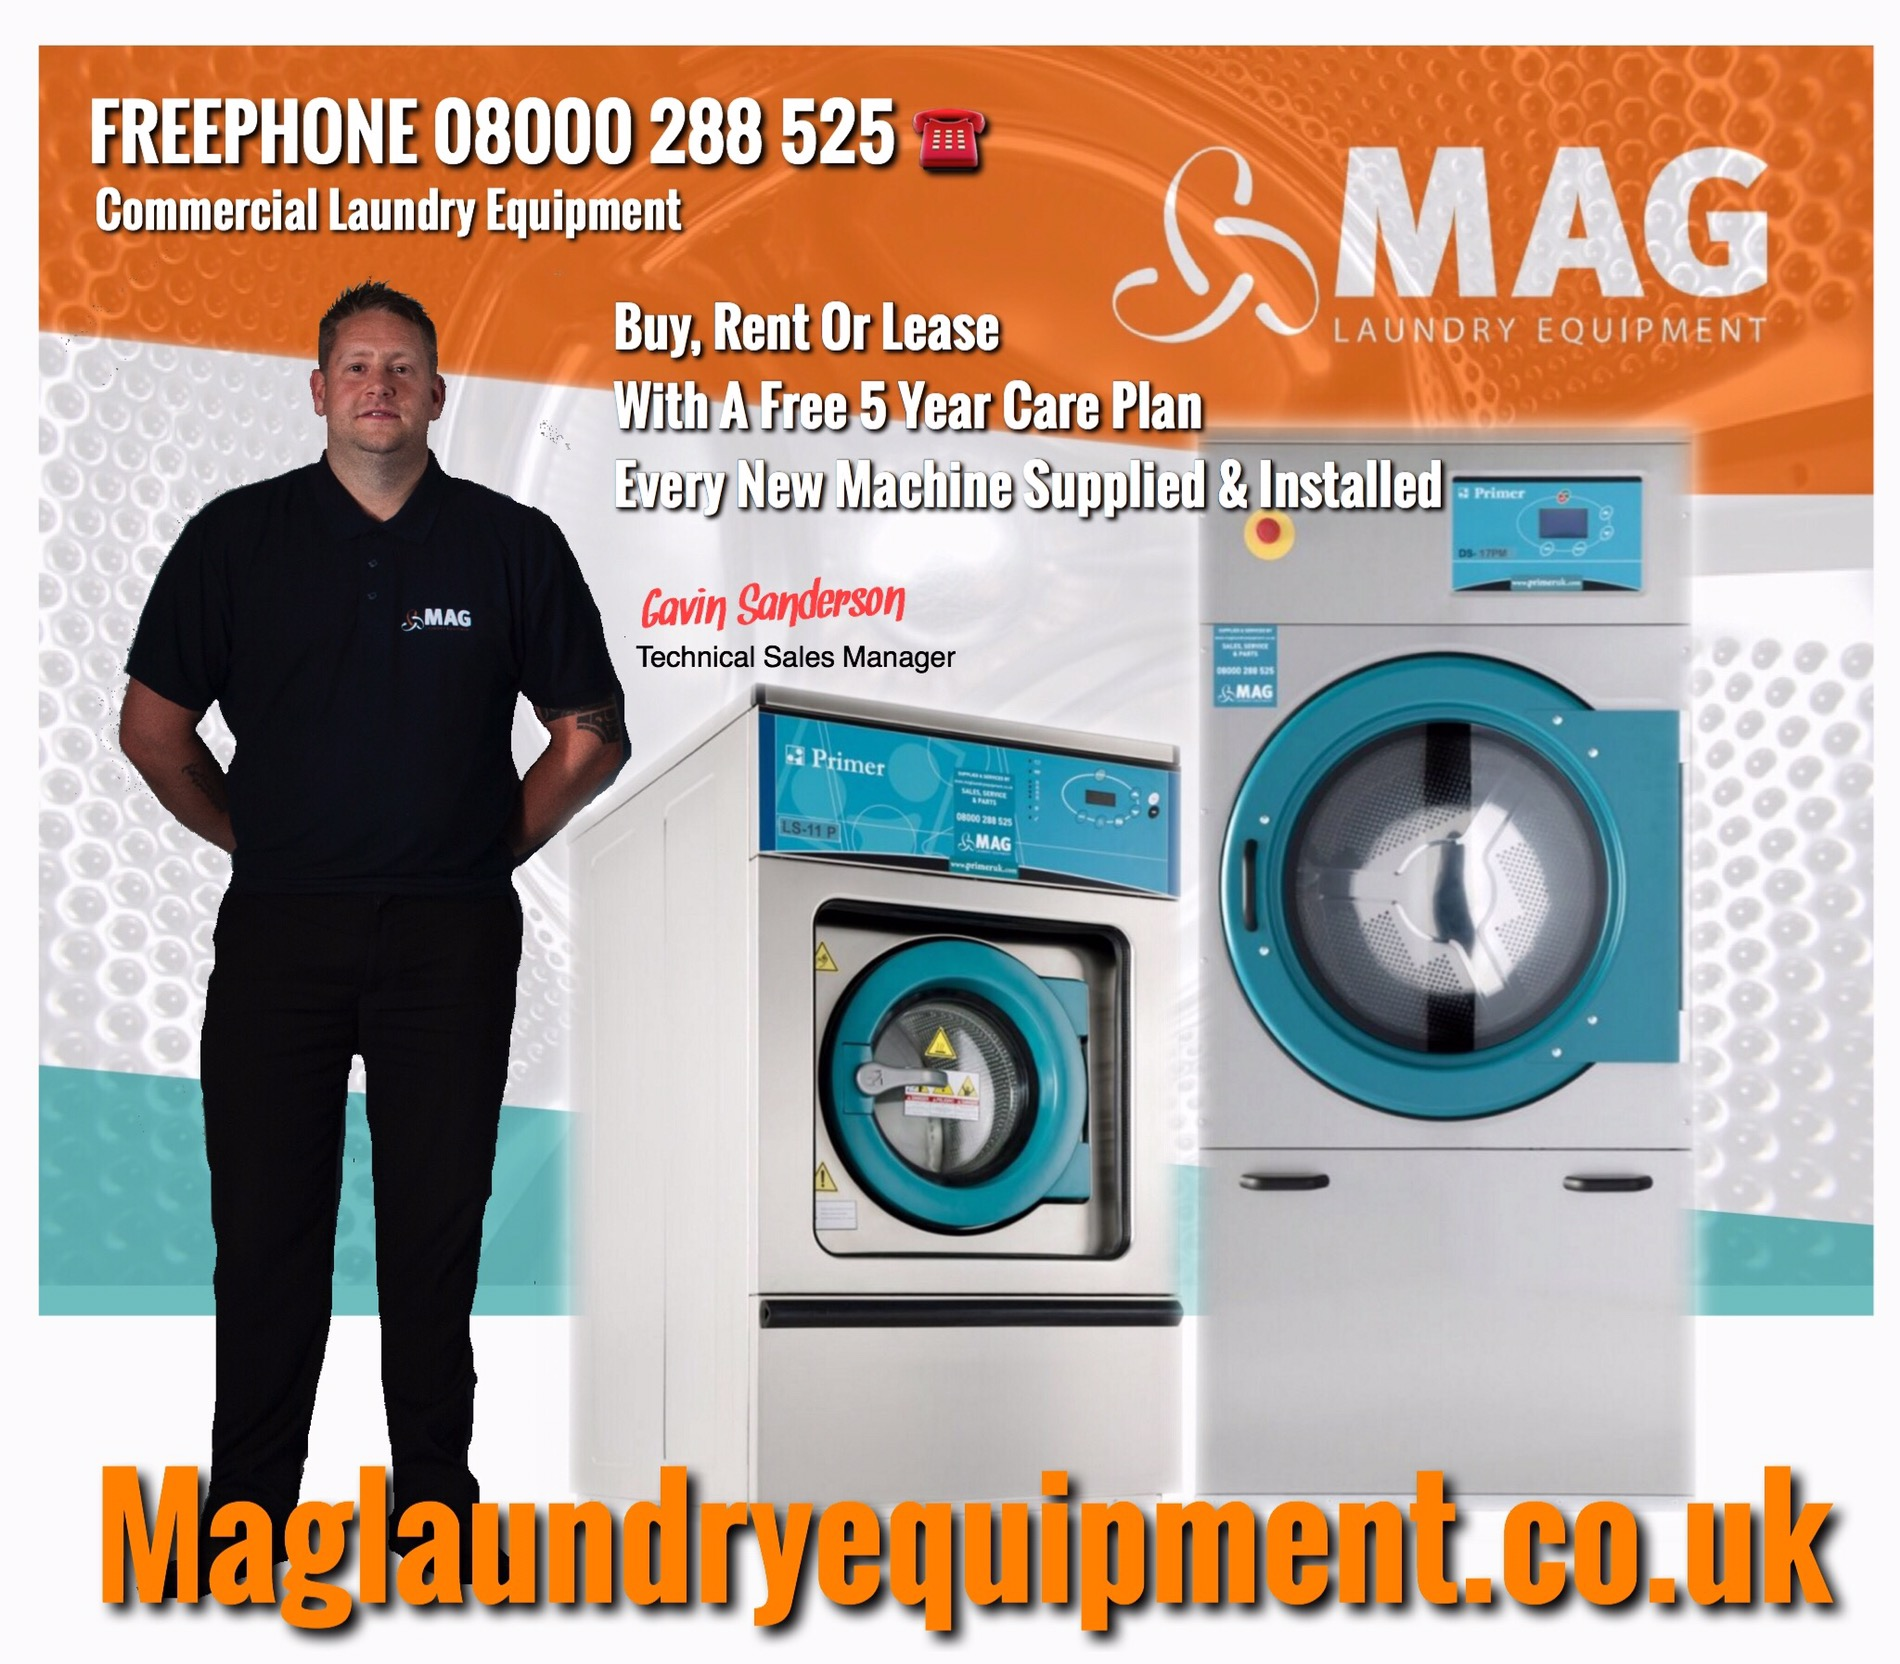 Buy, Rent or Lease laundry equipment?